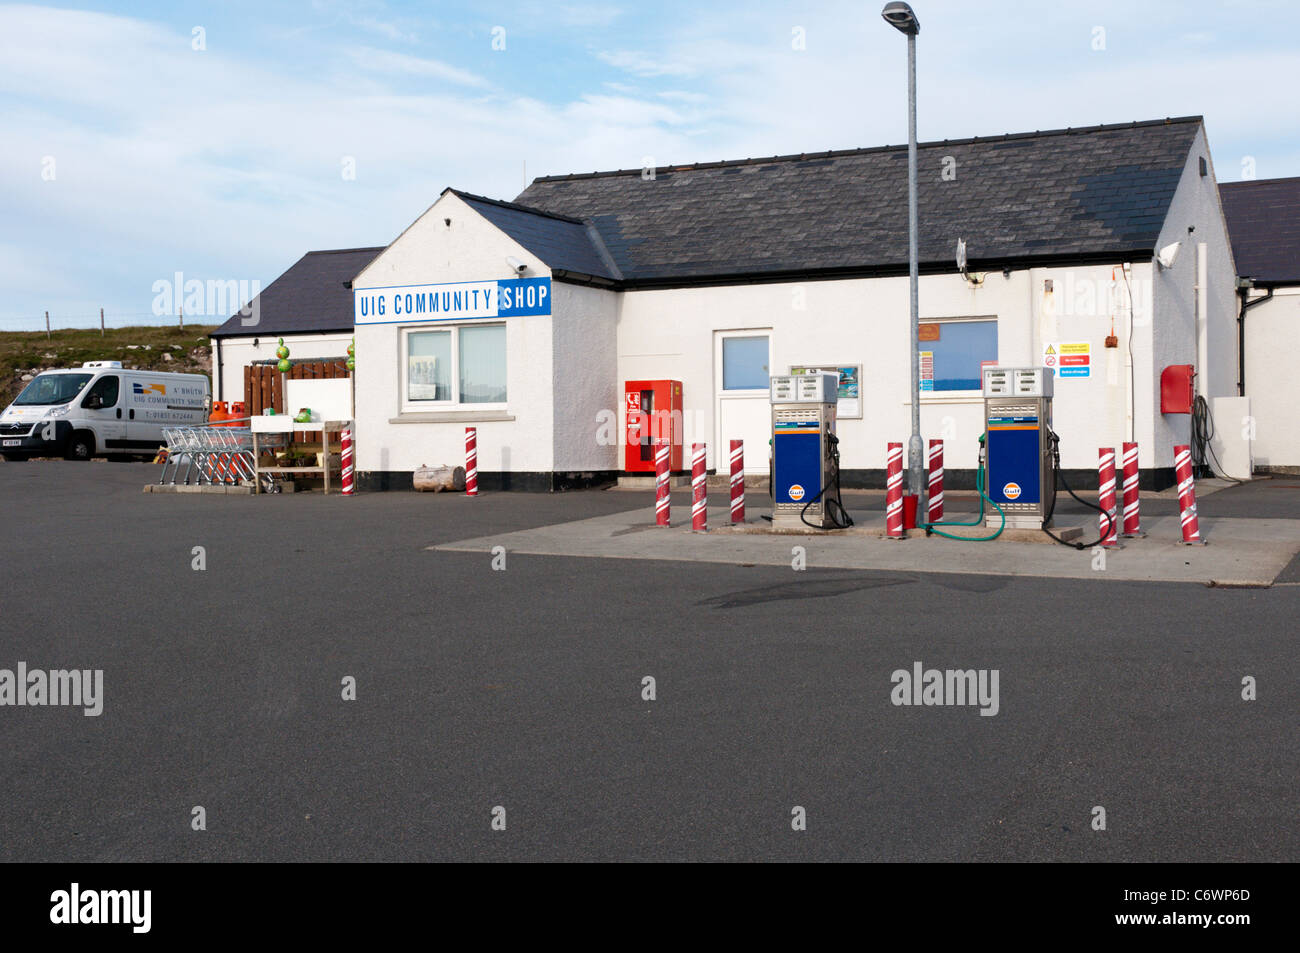 Uig filling station and Community Shop at Timsgearraidh on the Isle of Lewis, Outer Hebrides, Scotland - Stock Image